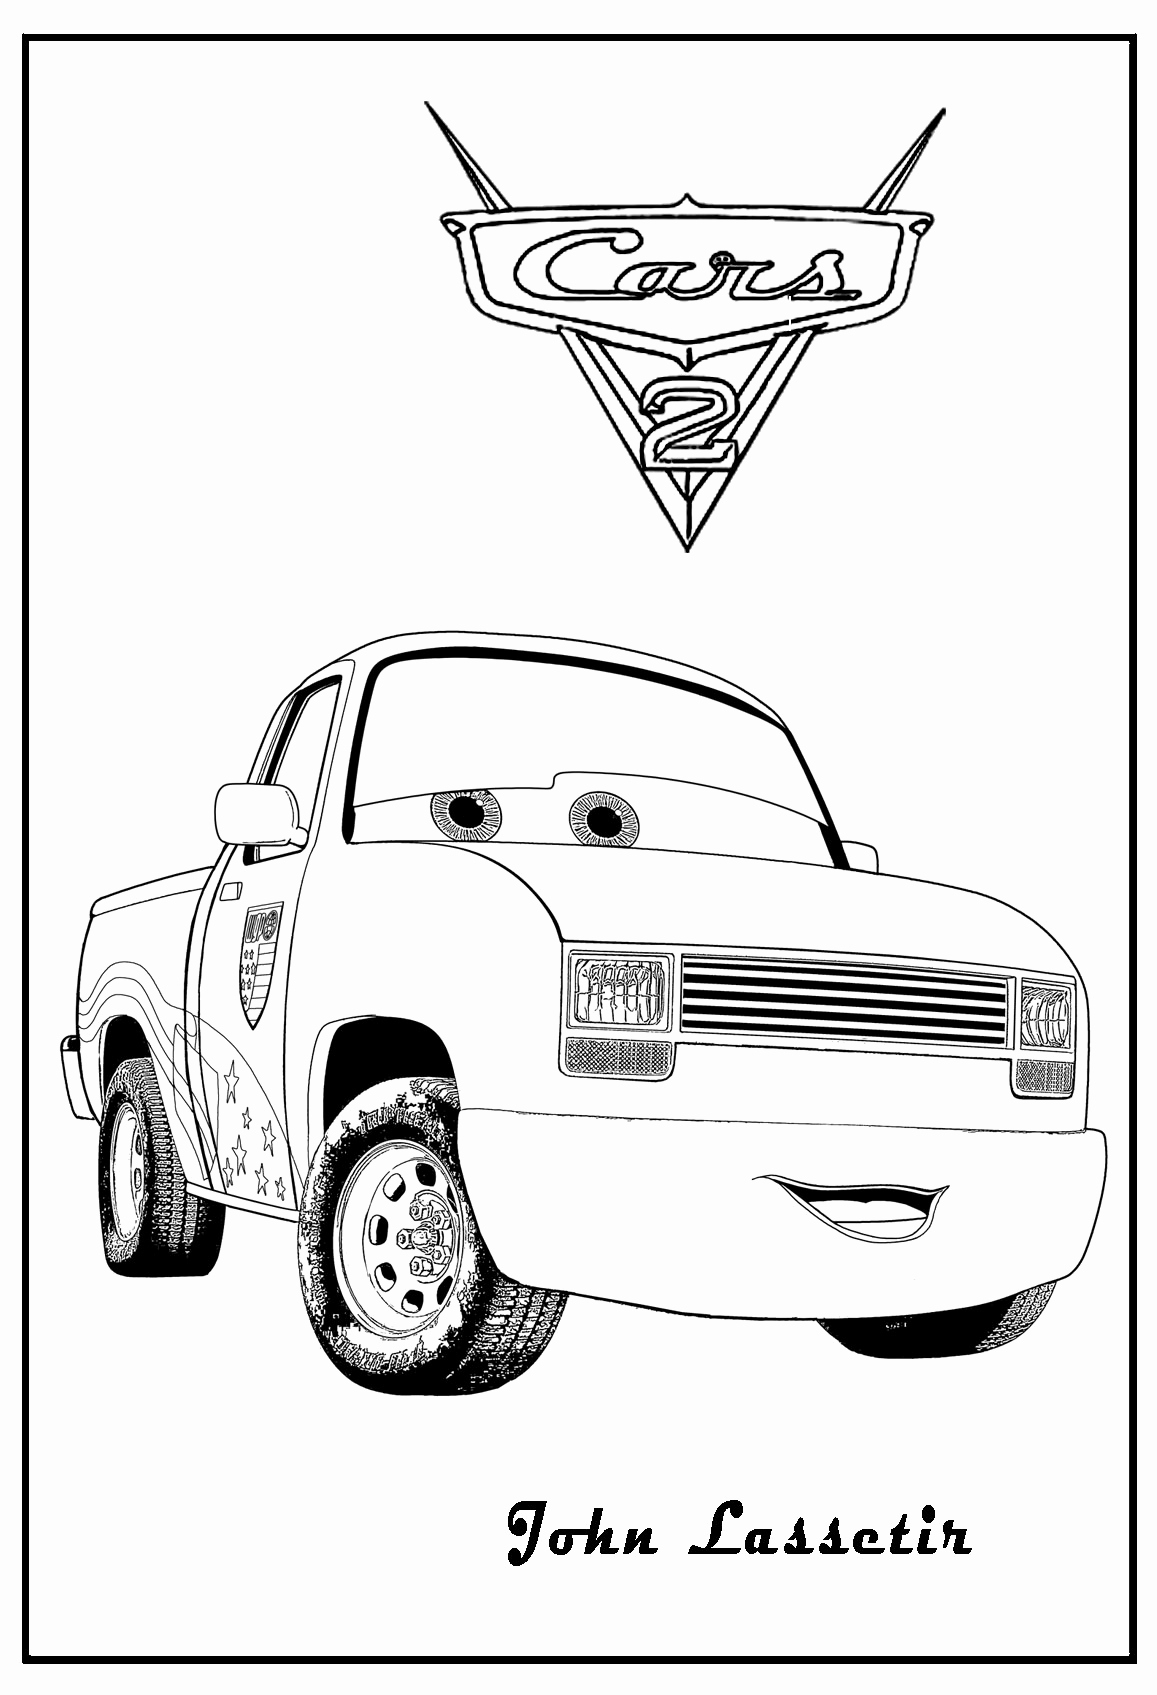 10 Inspirational Mcqueen Cars Coloring Pages Davidhowald Download Of Cars 2 Coloring Pages with Cars 2 Coloring Pages with Cars 2 Gallery